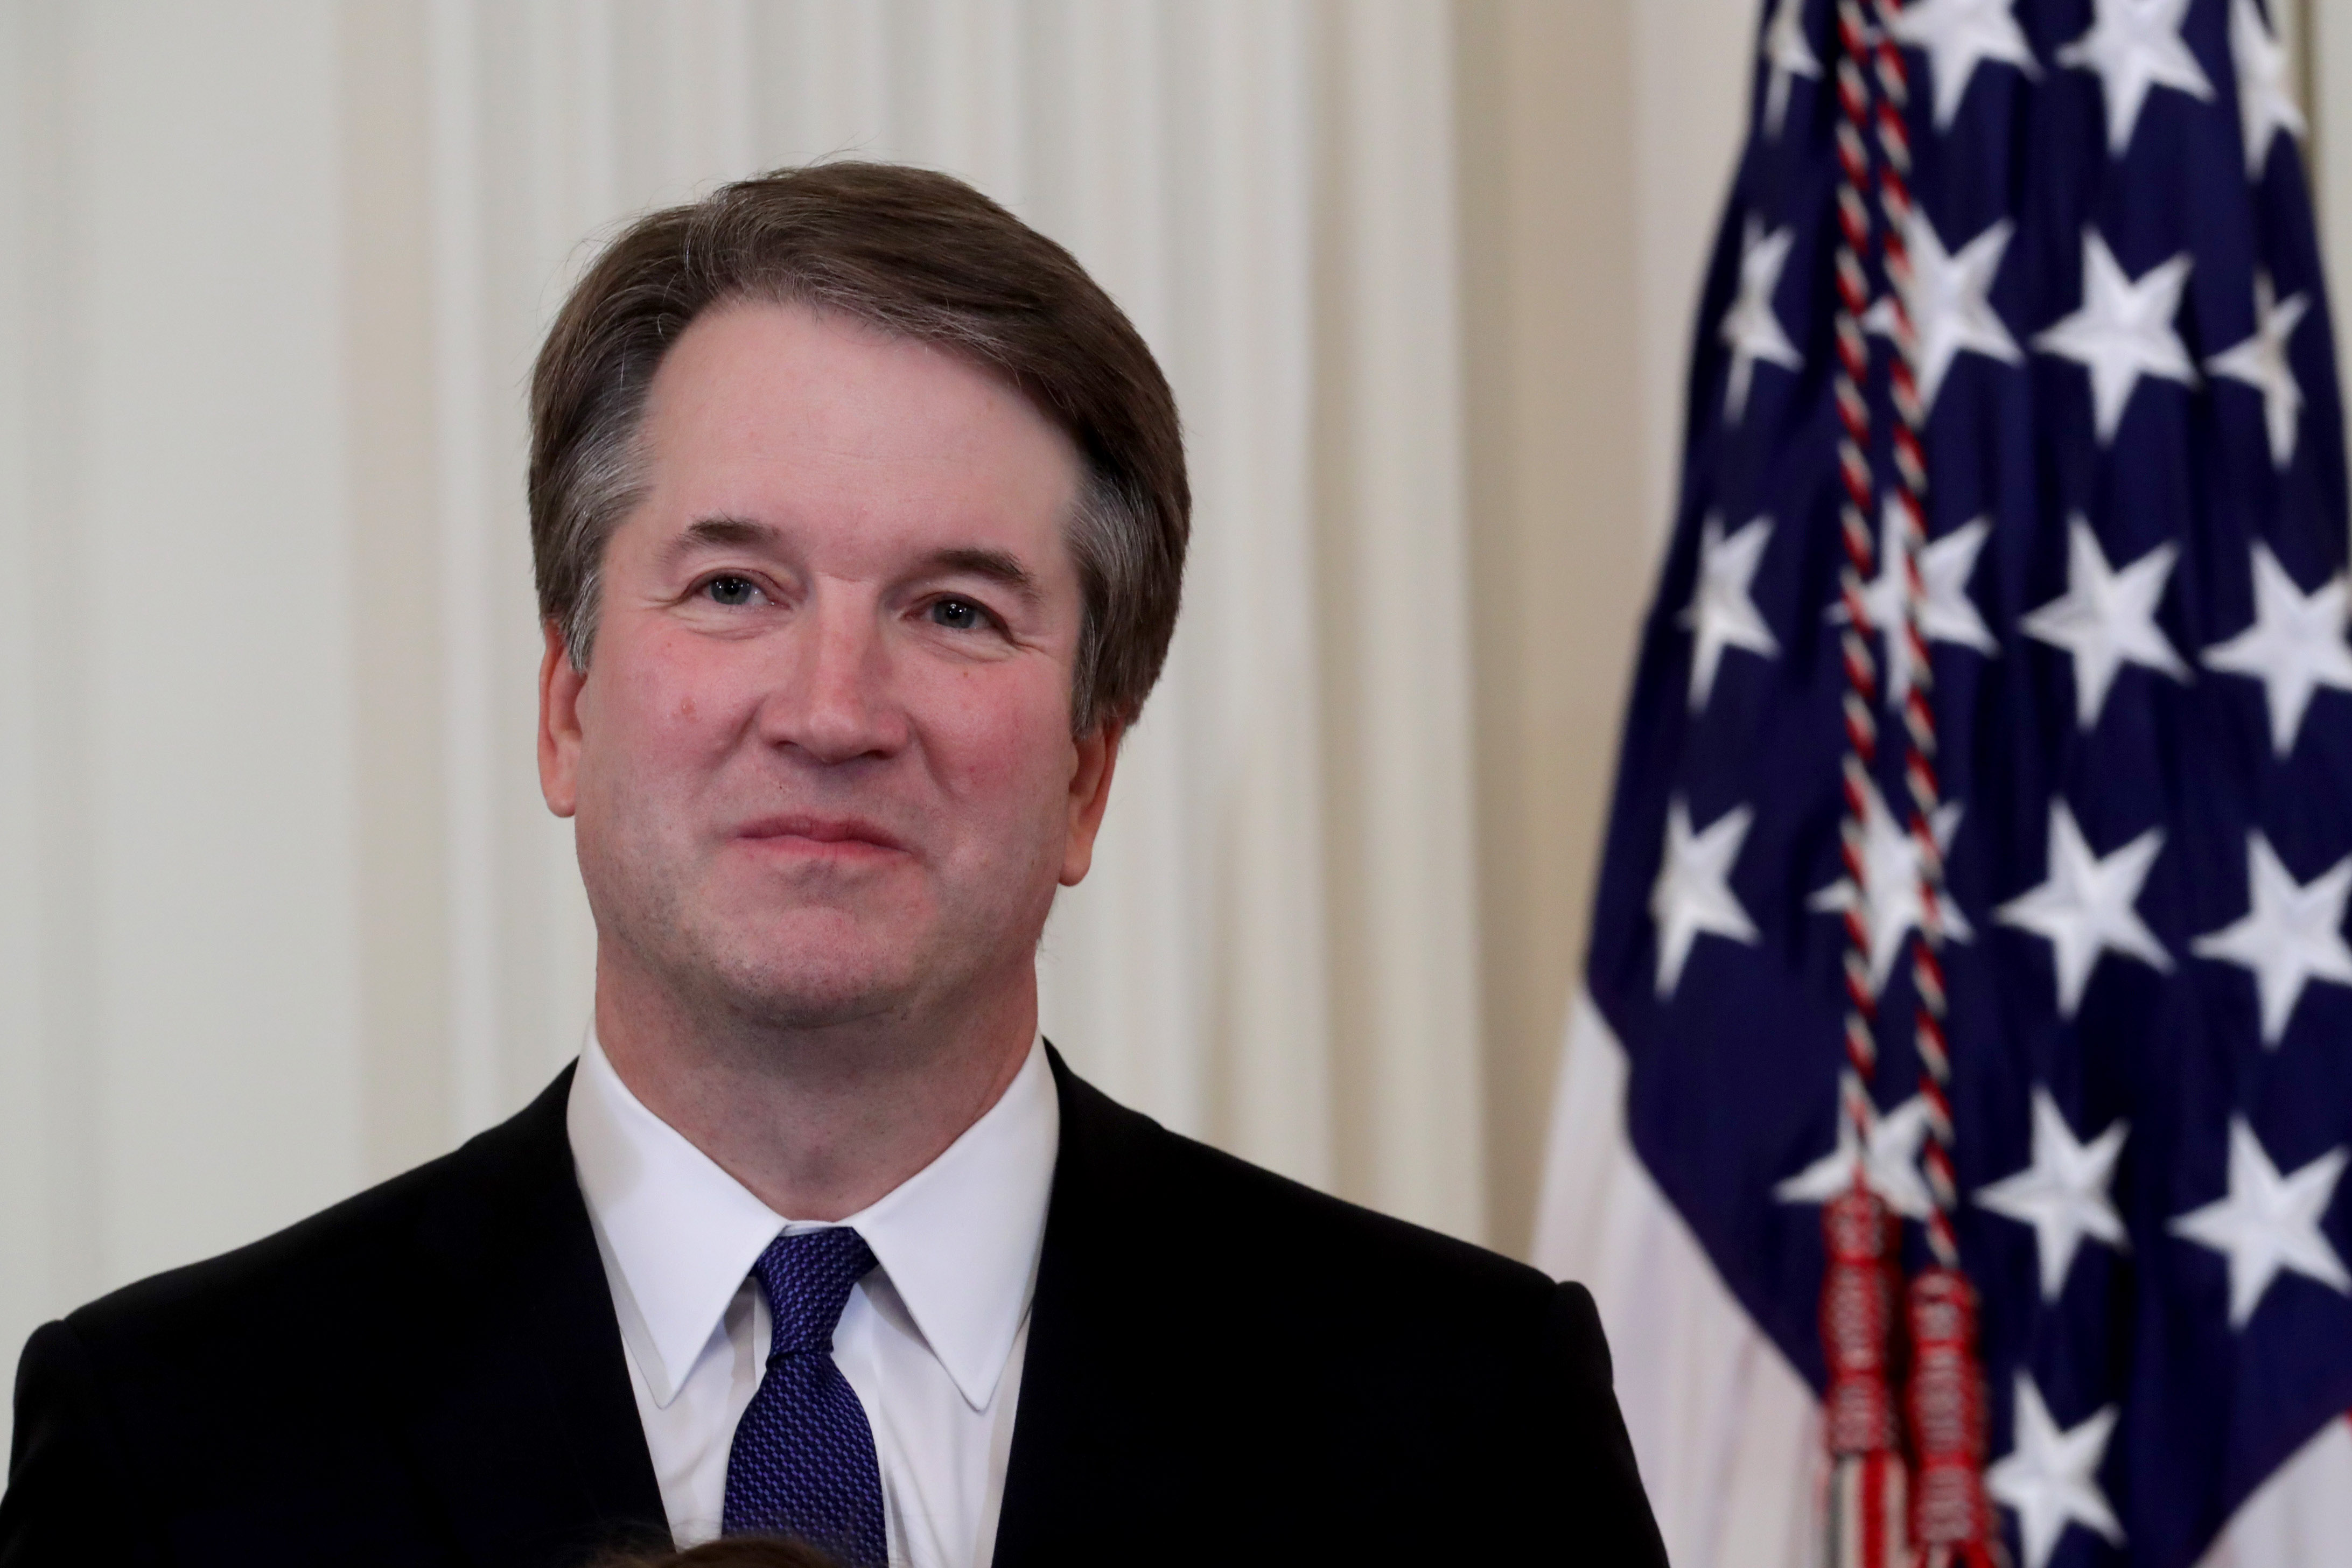 WASHINGTON, DC - JULY 09: U.S. President Donald Trump introduces U.S. Circuit Judge Brett M. Kavanaugh as his nominee to the United States Supreme Court during an event in the East Room of the White House July 9, 2018 in Washington, DC. Pending confirmation by the U.S. Senate, Judge Kavanaugh would succeed Associate Justice Anthony Kennedy, 81, who is retiring after 30 years of service on the high court. (Photo by Chip Somodevilla/Getty Images)